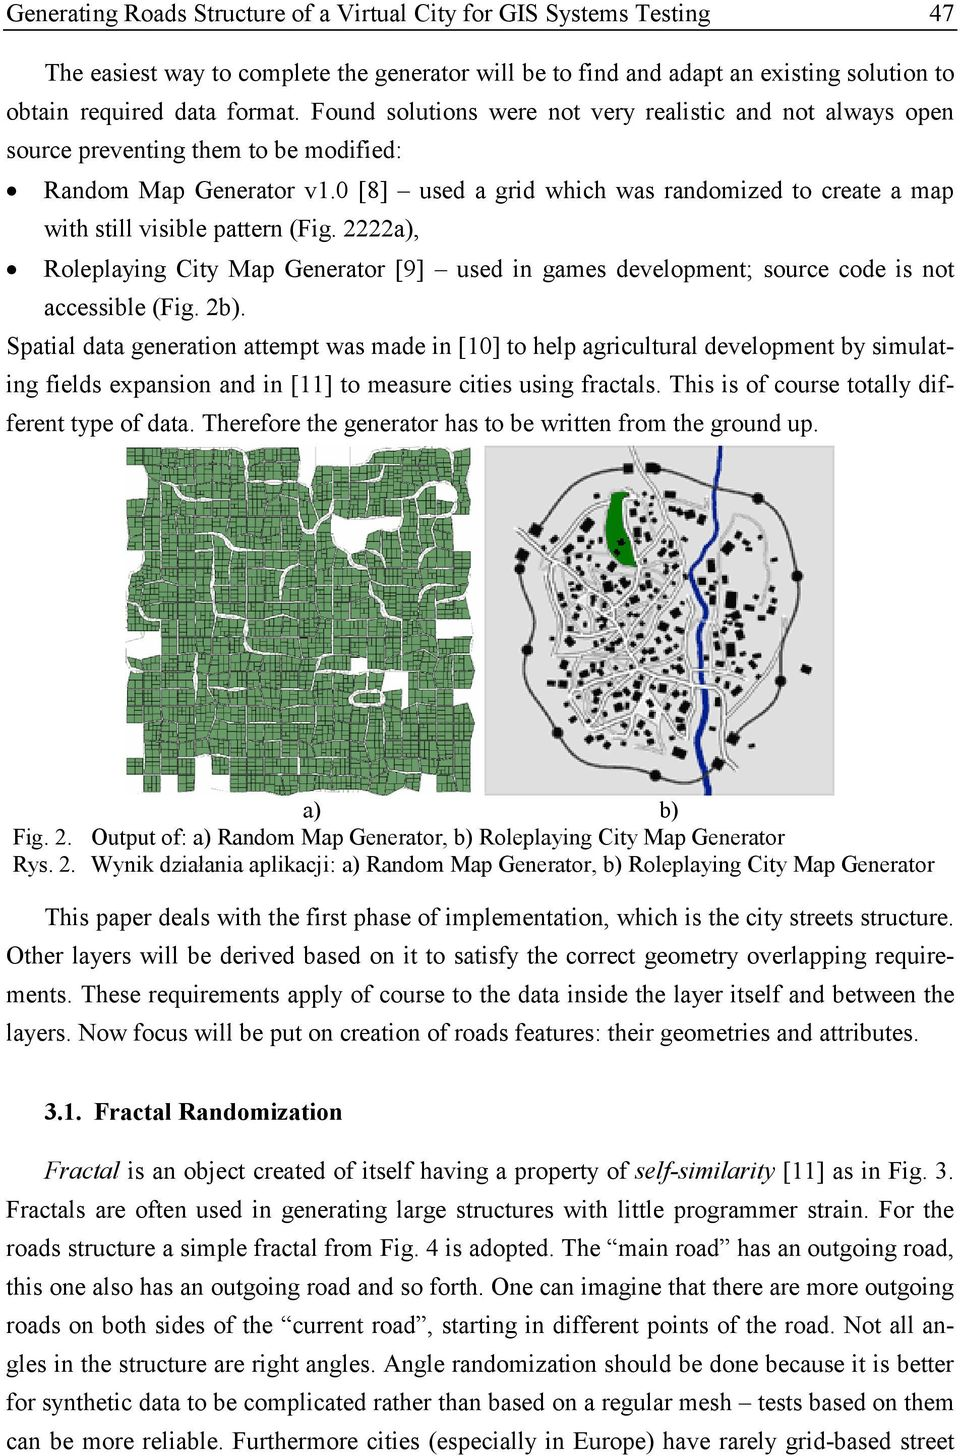 0 [8] used a grid which was randomized to create a map with still visible pattern (Fig. 2222a), Roleplaying City Map Generator [9] used in games development; source code is not accessible (Fig. 2b).